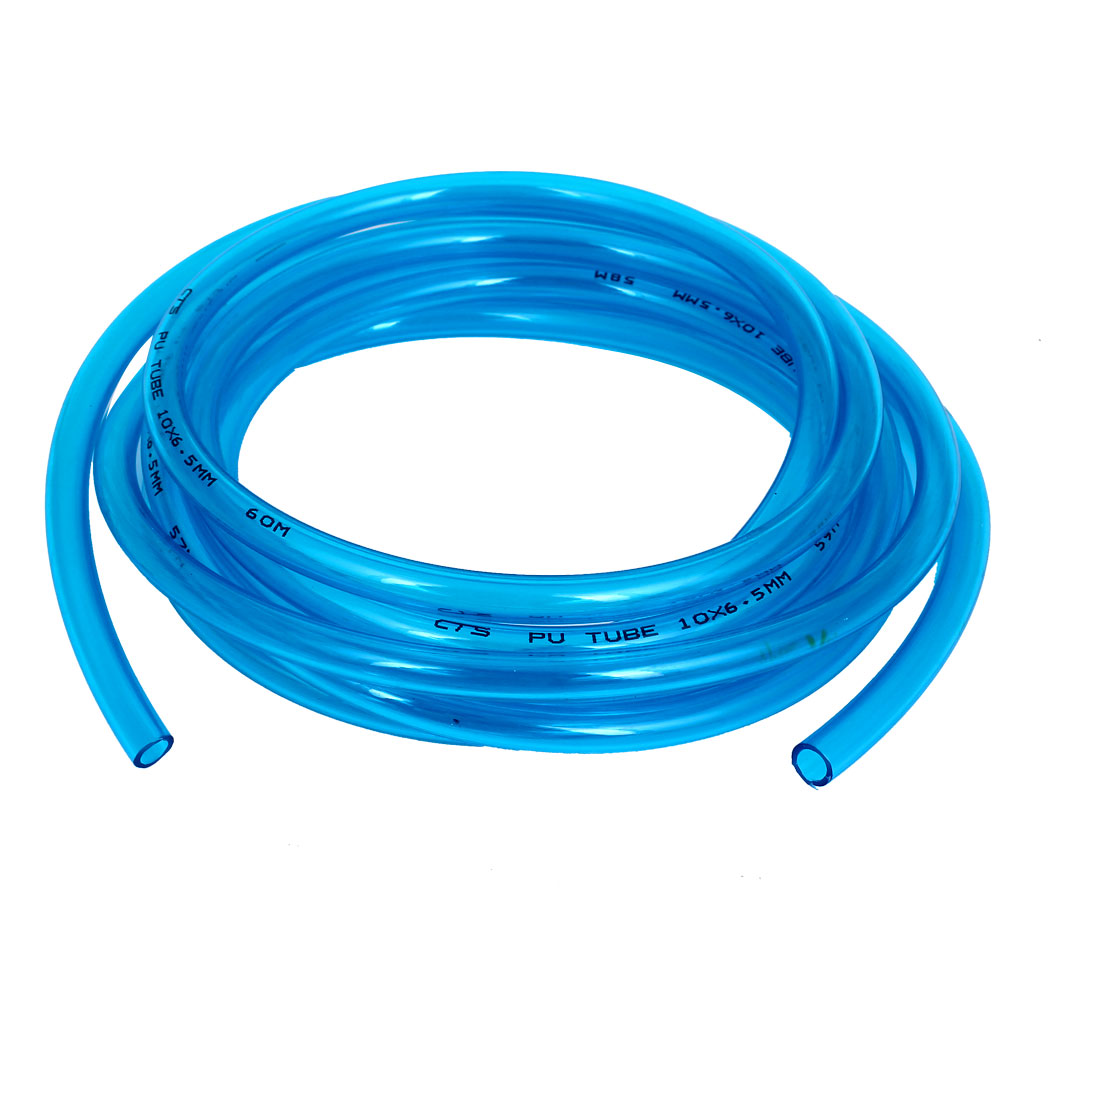 PU Polyurethane Air Tubing Pneumatic Pipe Tube Hose Clear Blue 10x6.5mm 5M